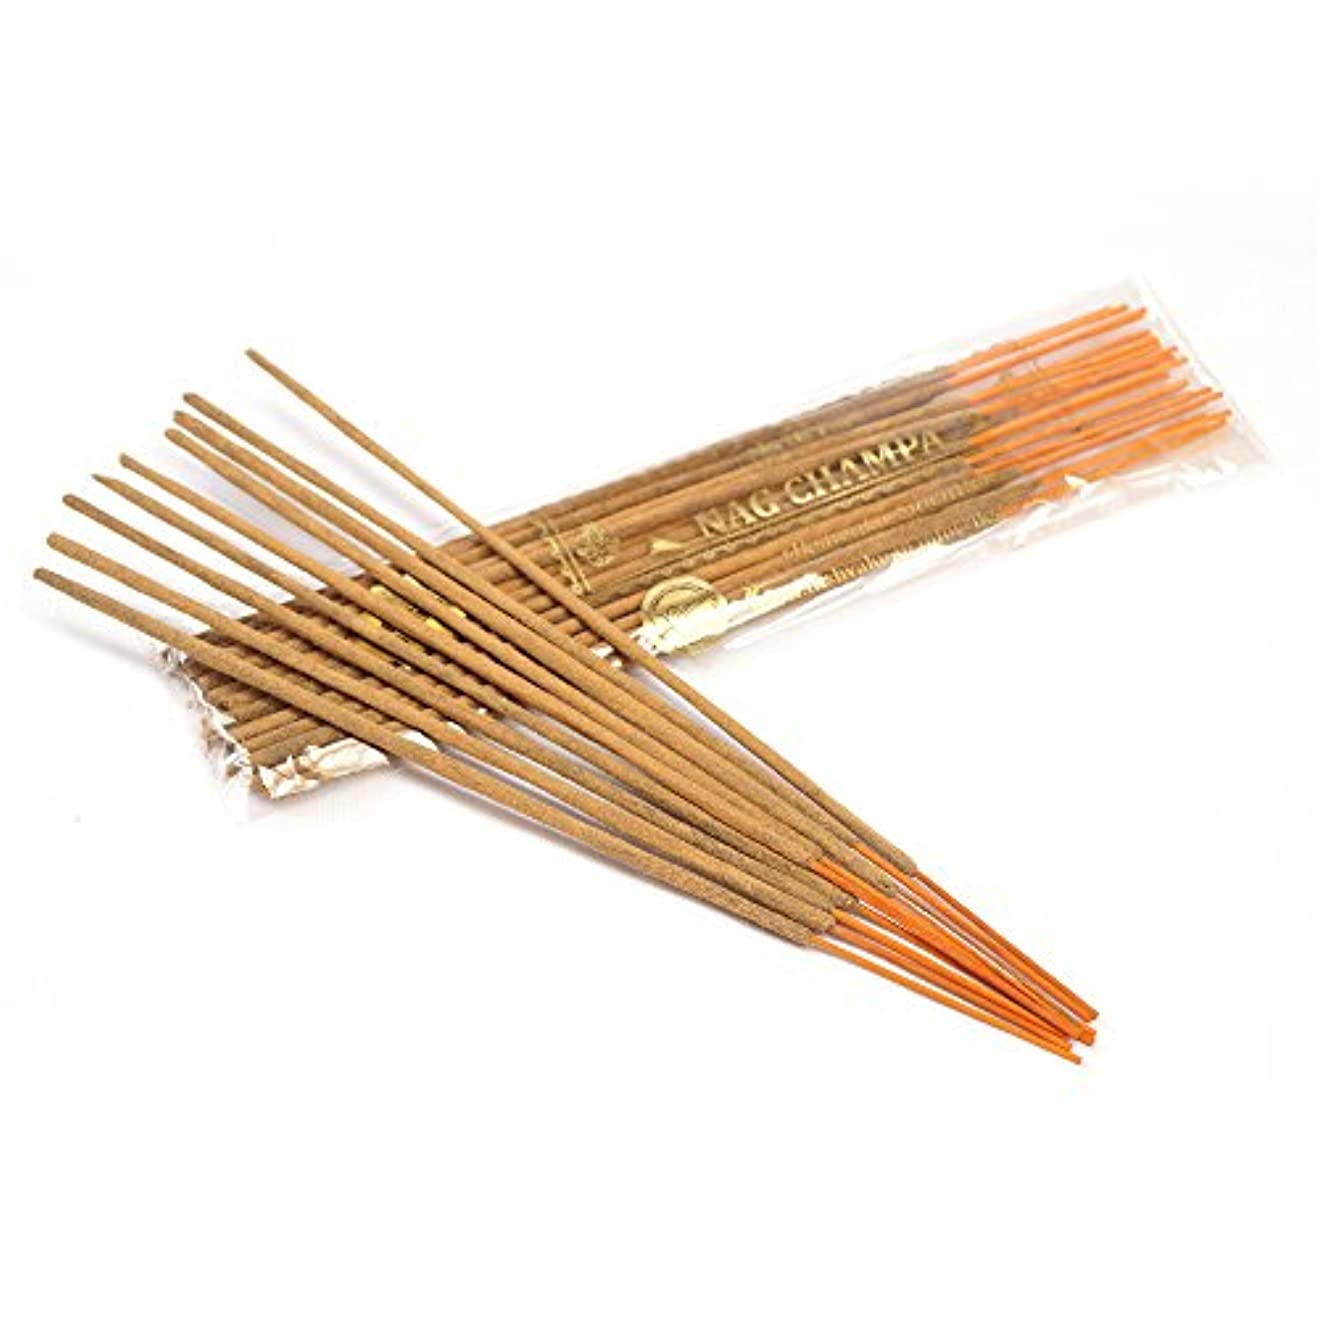 巧みな昆虫パックNag Champa Incense Sticks 250